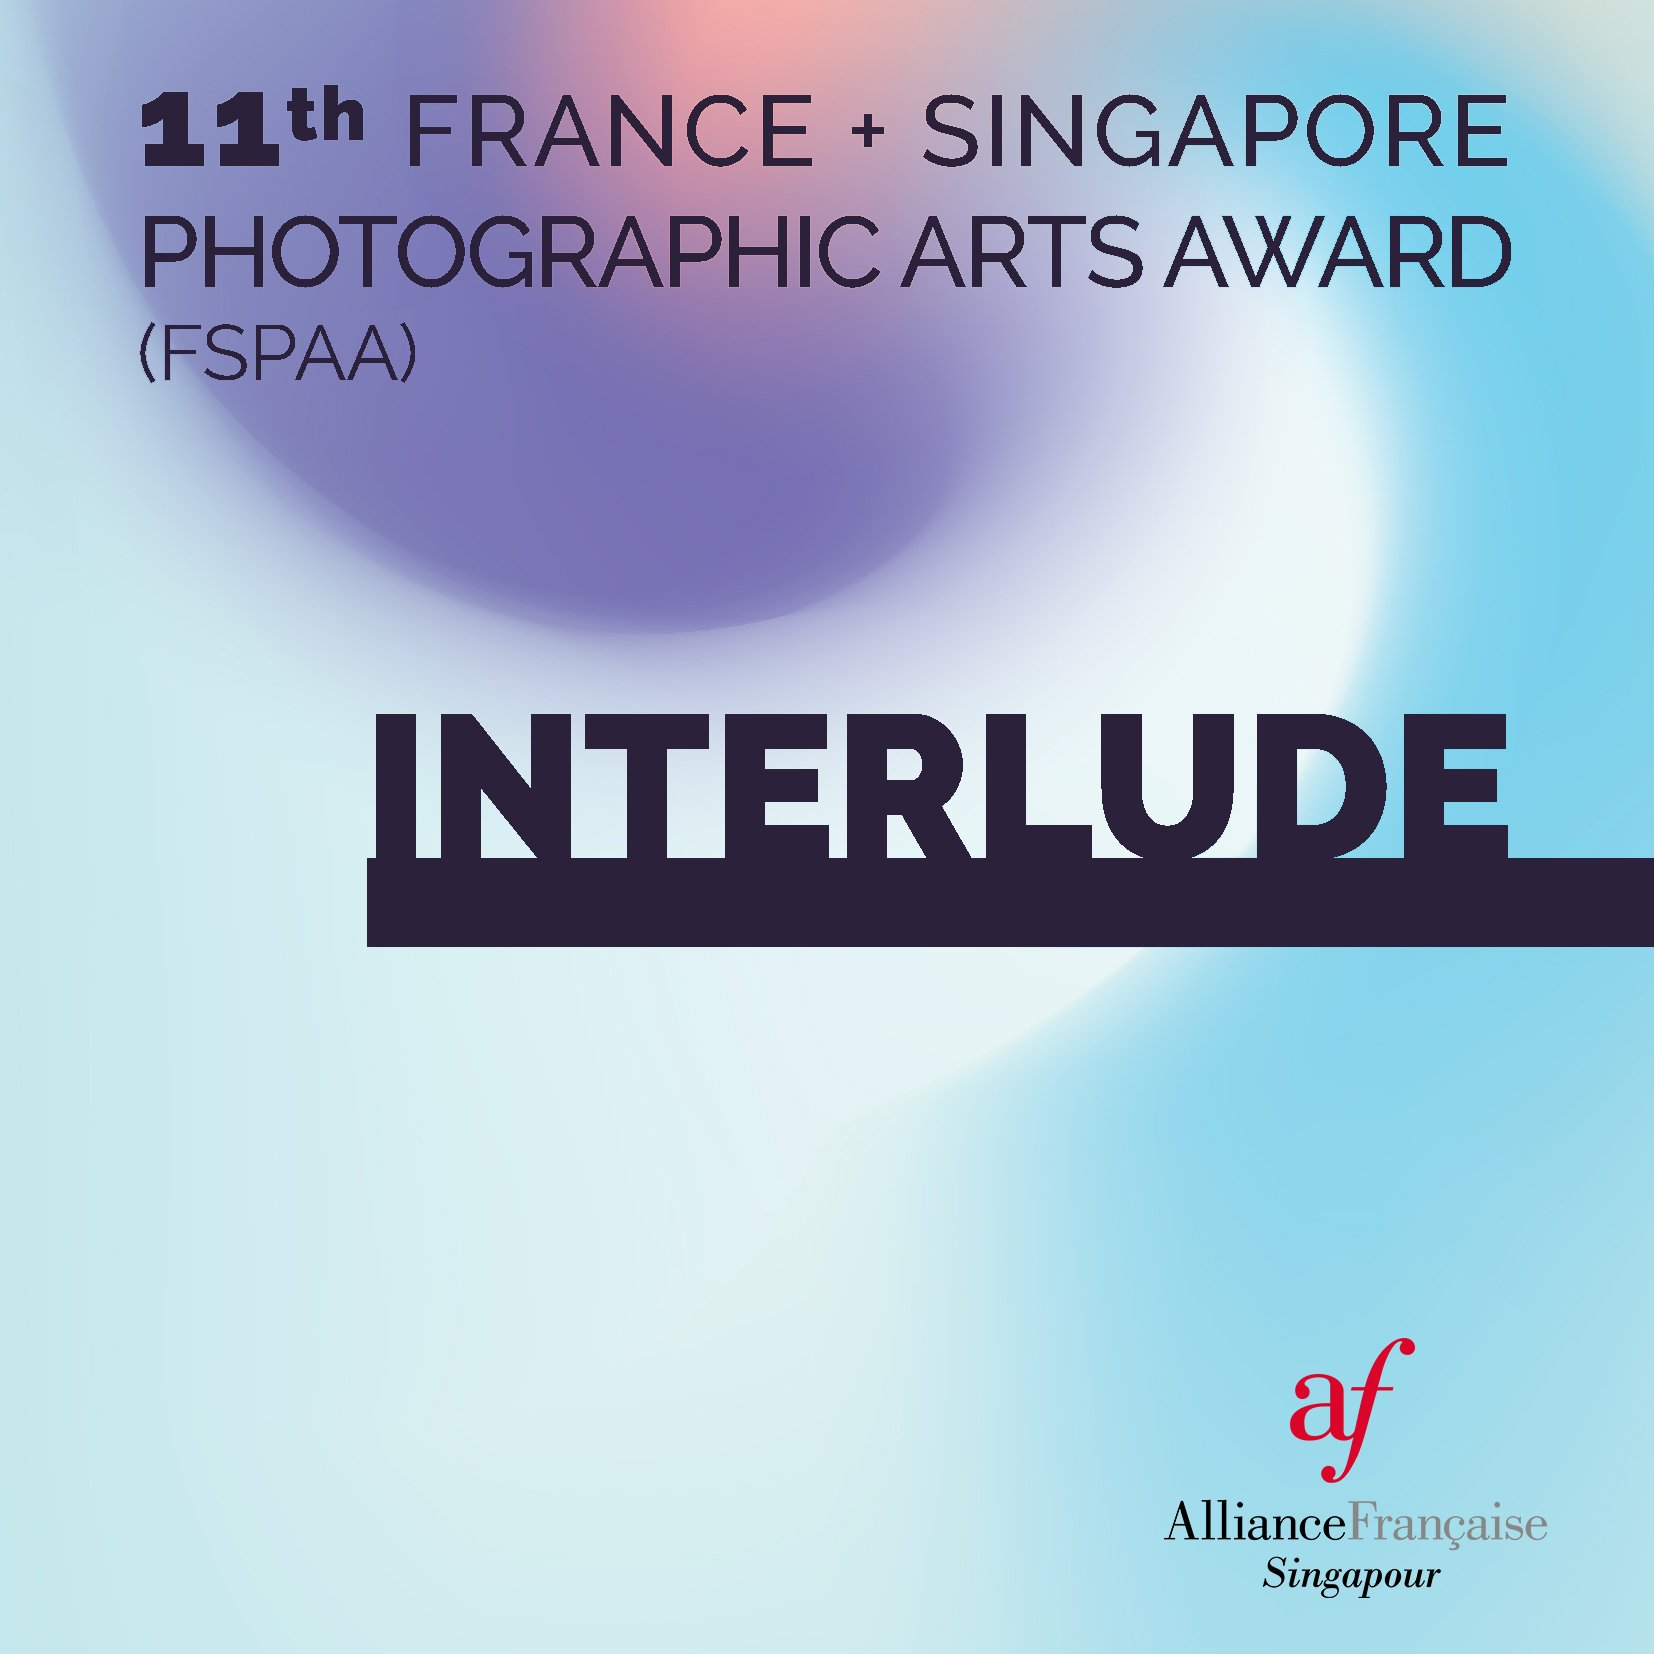 Interlude Square Logo